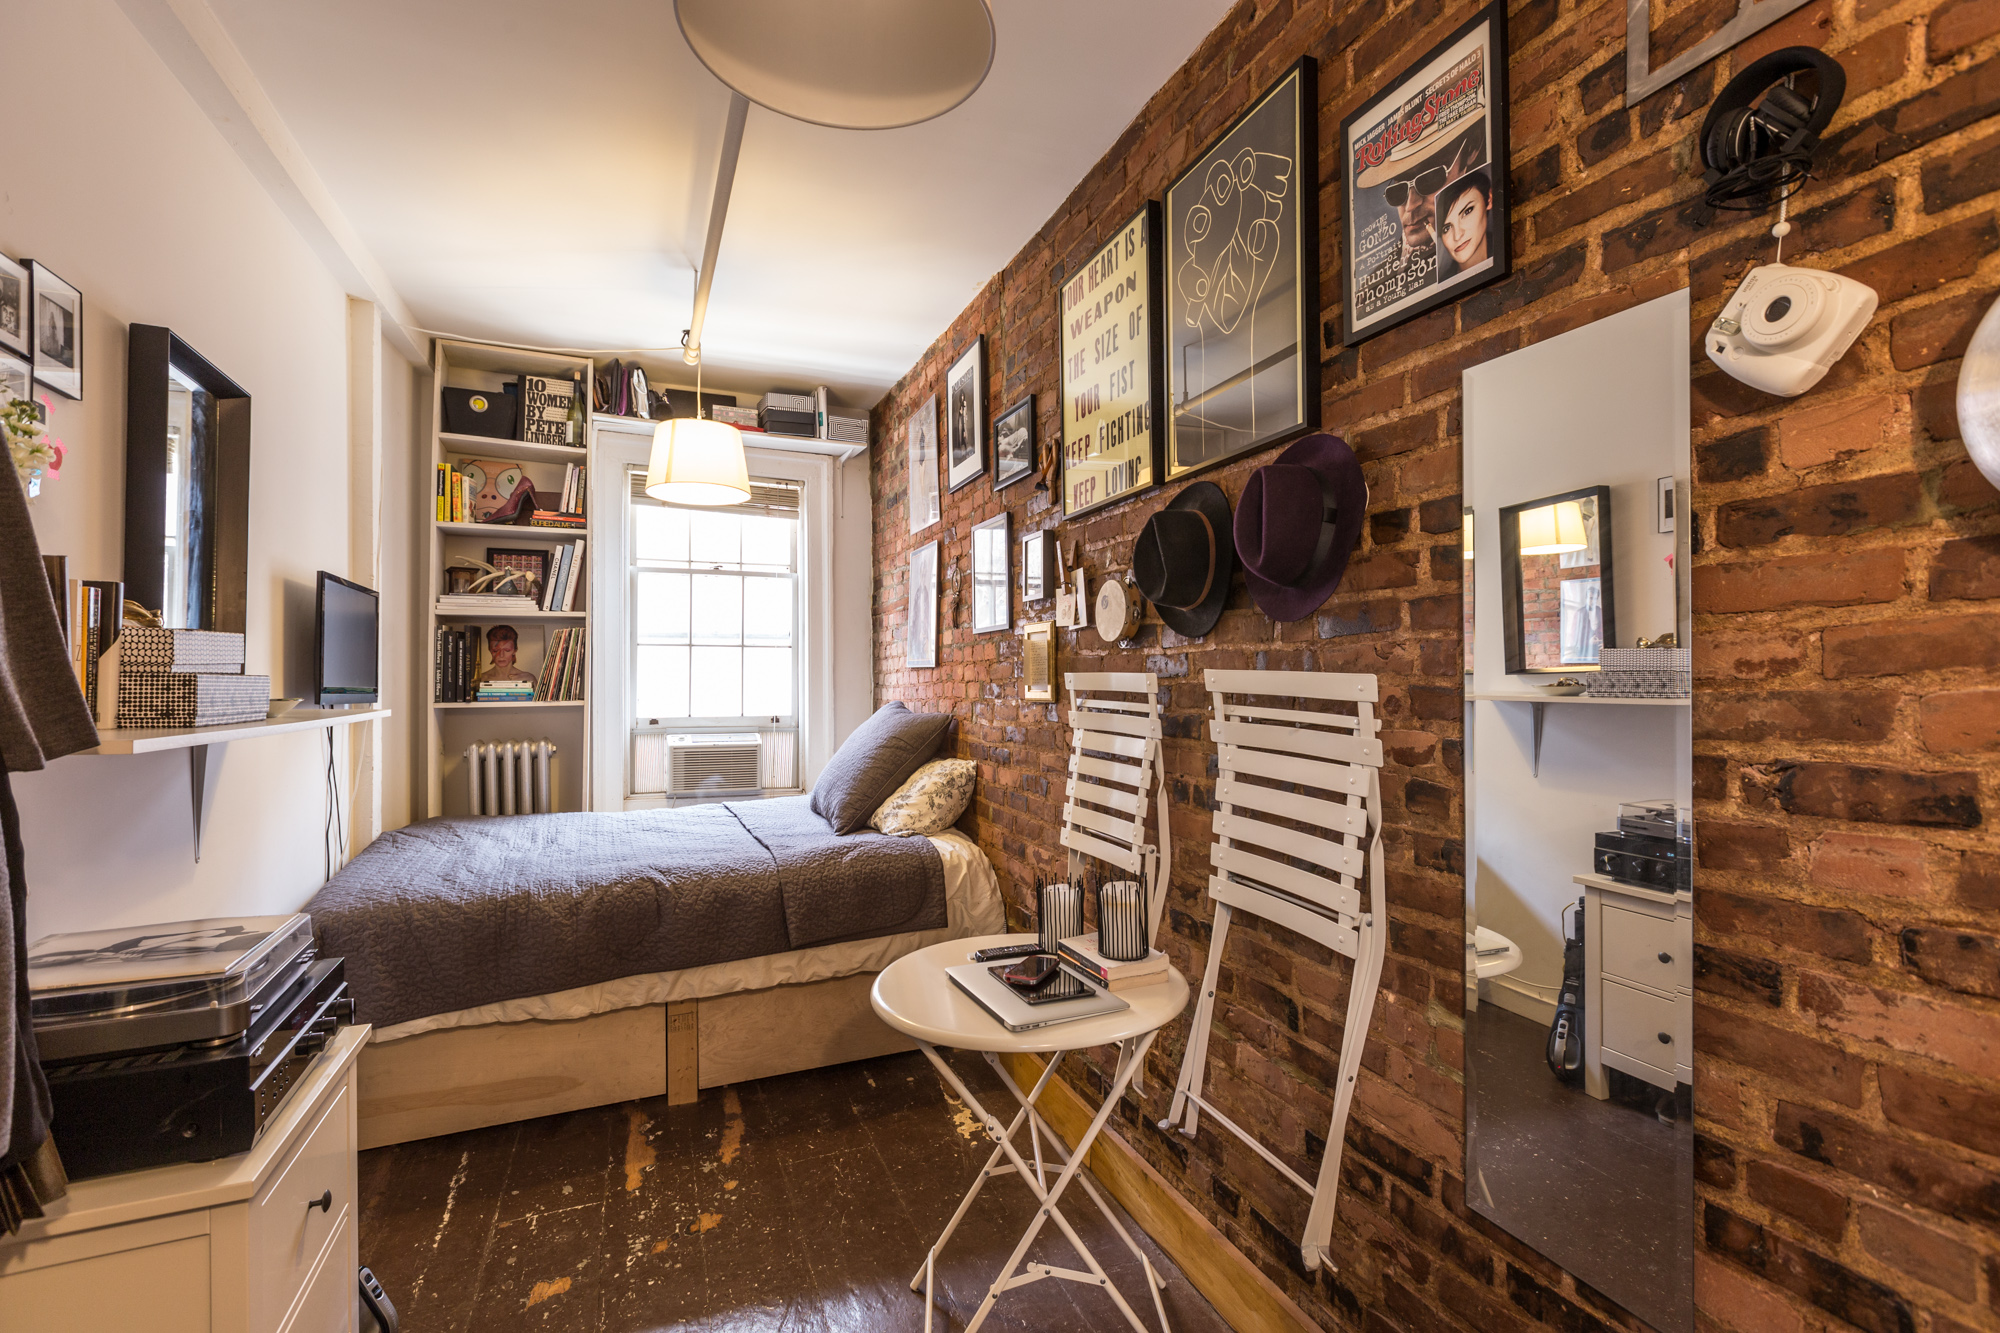 9 new york city micro-apartments that bolster the tiny-living